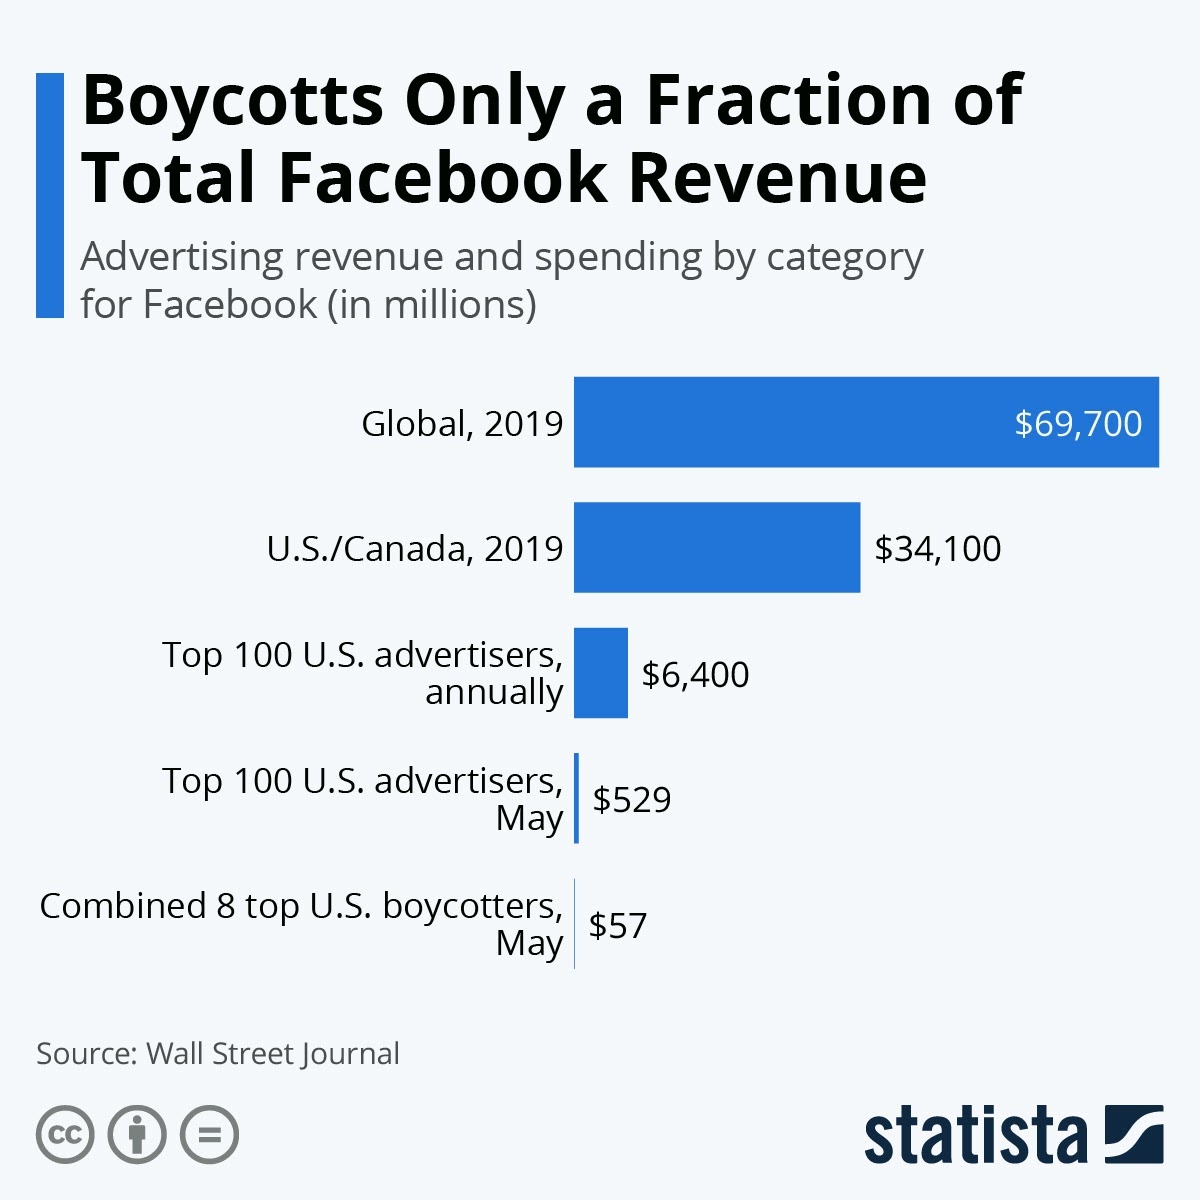 Boycotts Only a Fraction of Total Facebook Revenue #infographic